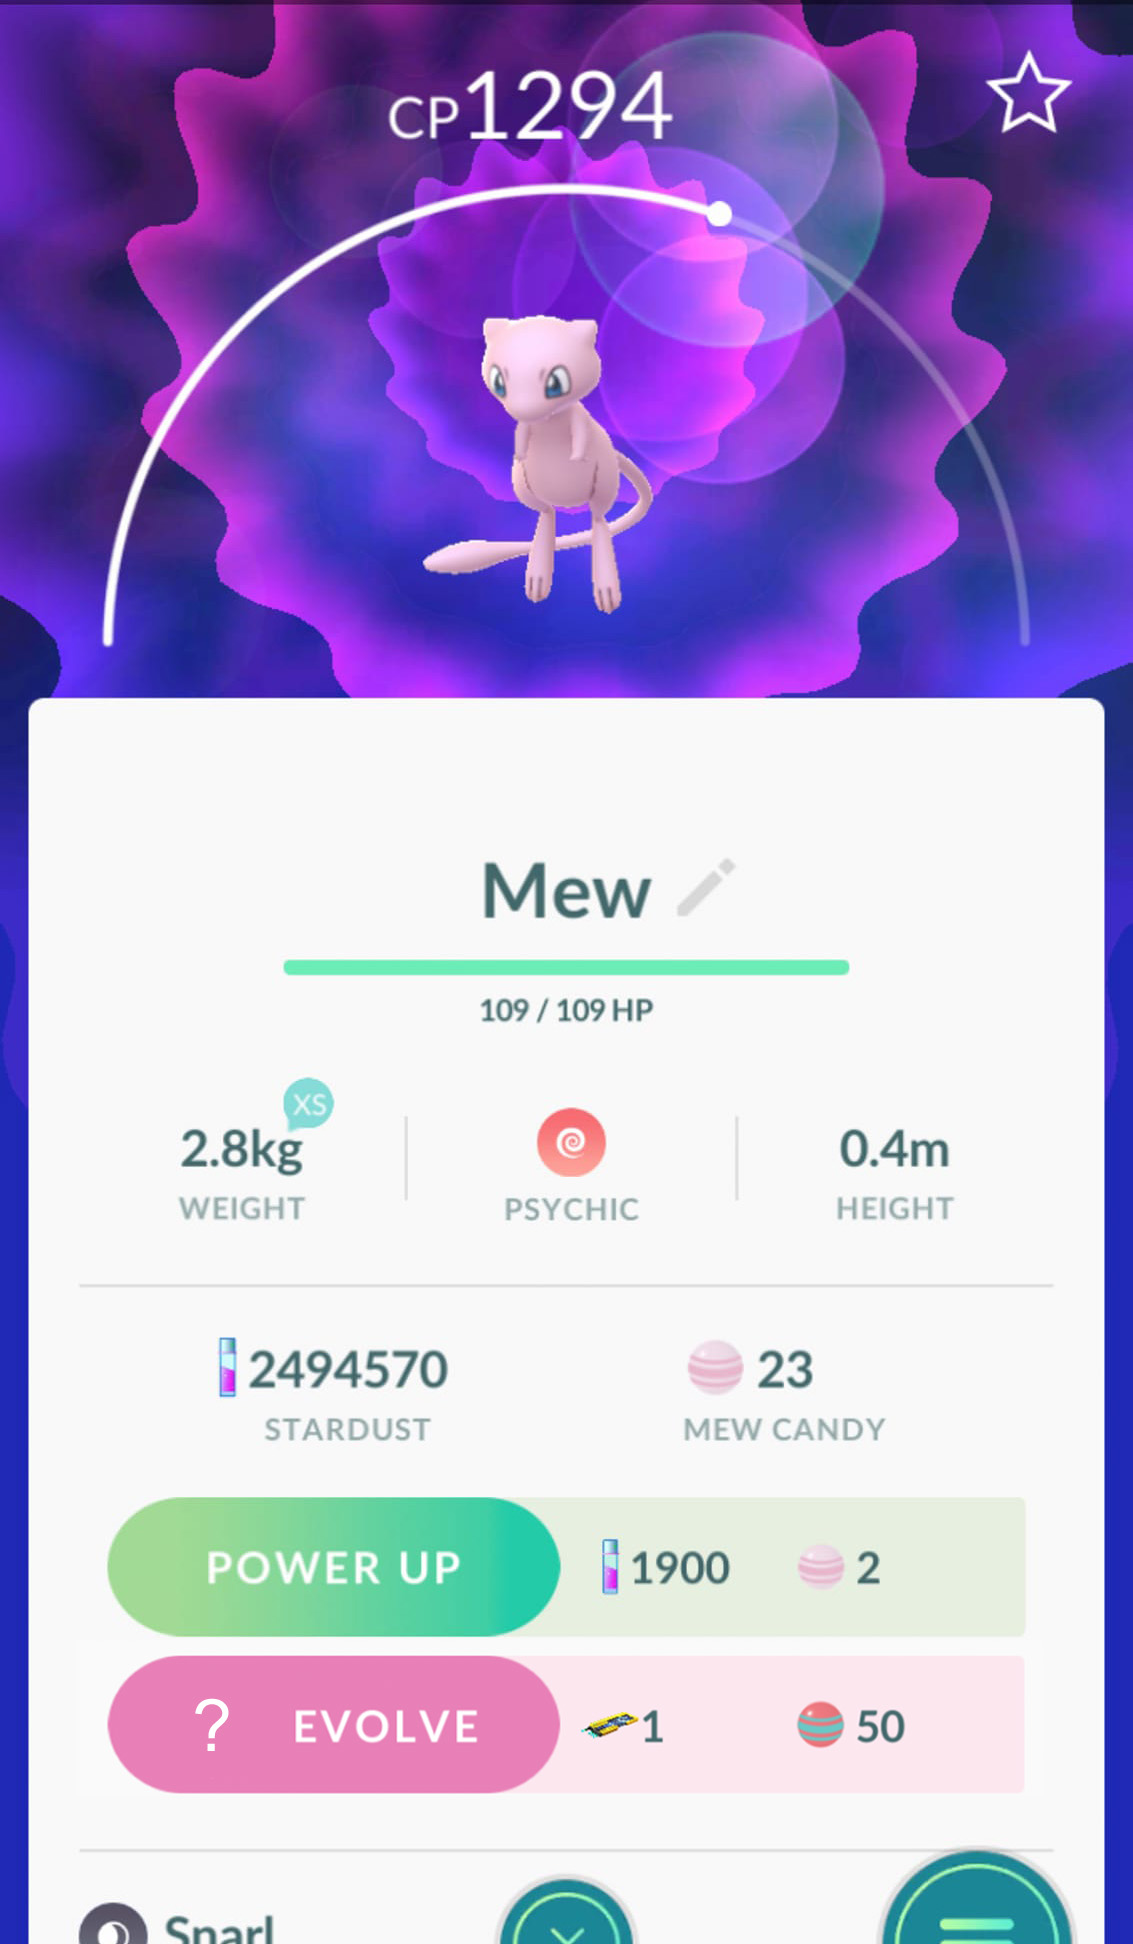 Should i evolve this mew to mewtwo or wait for a better one pokemon go wiki gamepress - Evolution mew ...